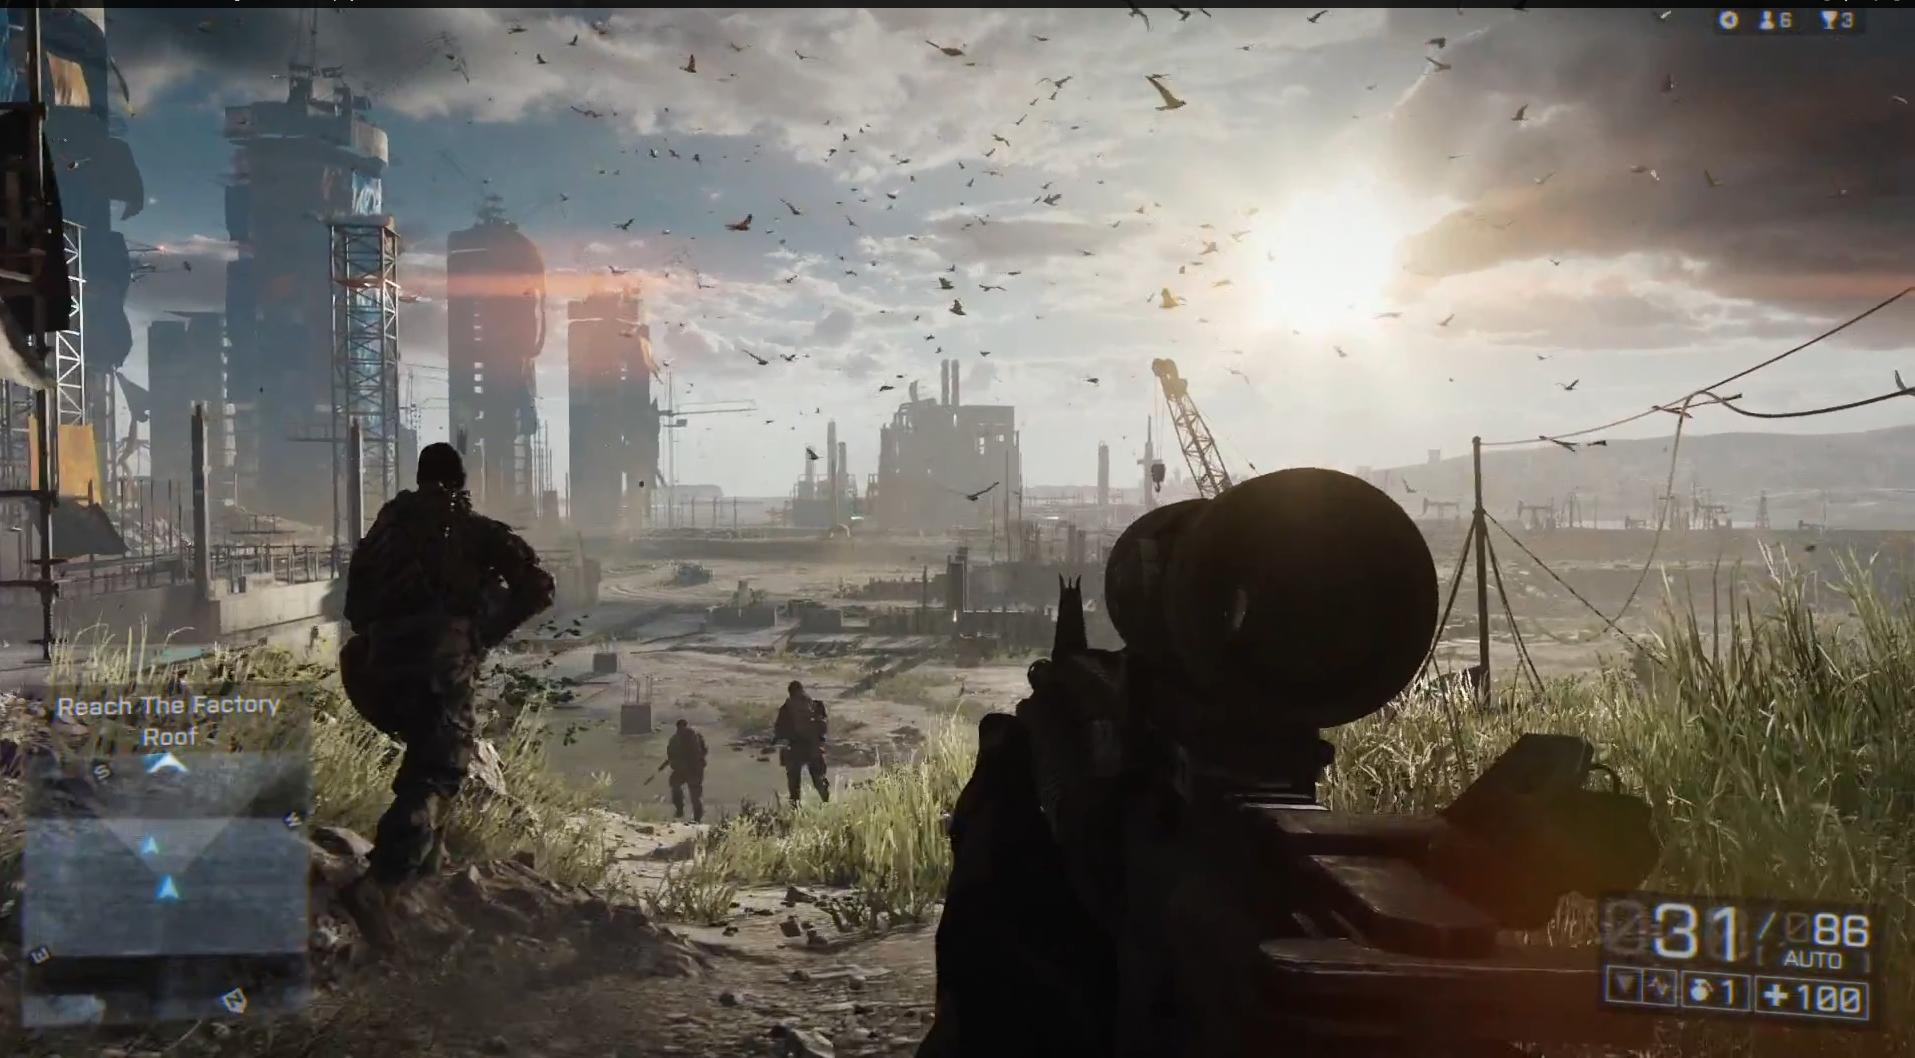 Game DownloadsBest FPS GAME Of YEAR Battlefield 4 OUT